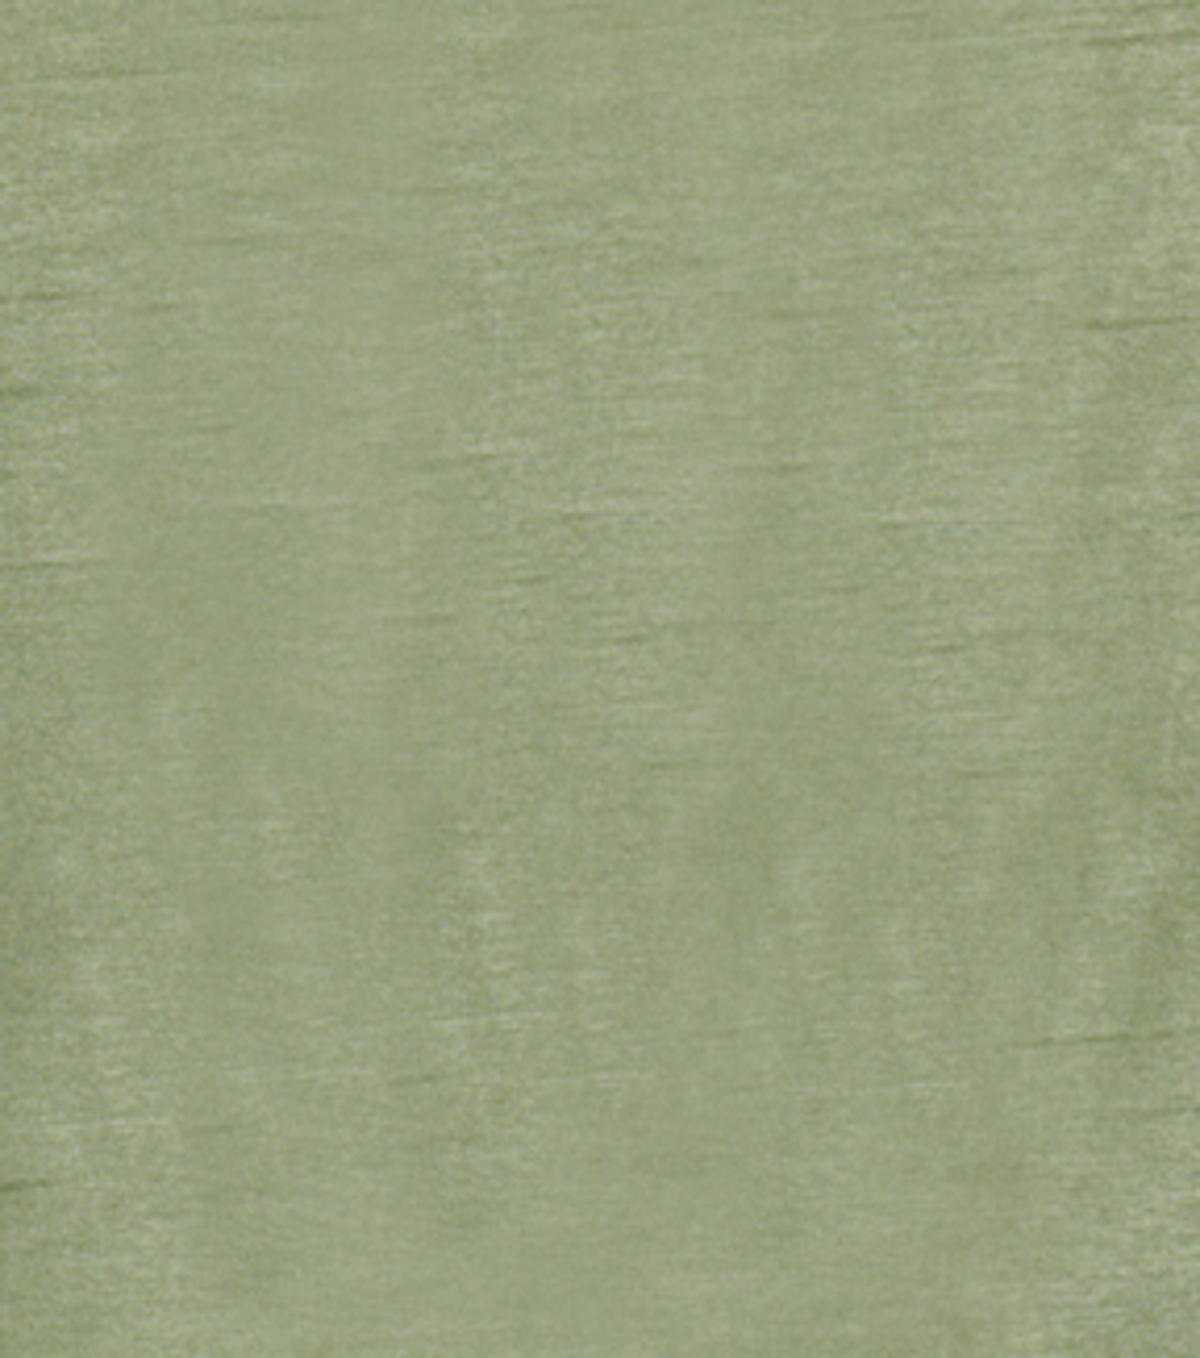 8''x8'' Home Decor Fabric Swatch-Solid Fabric Eaton Square Comros Ming Green